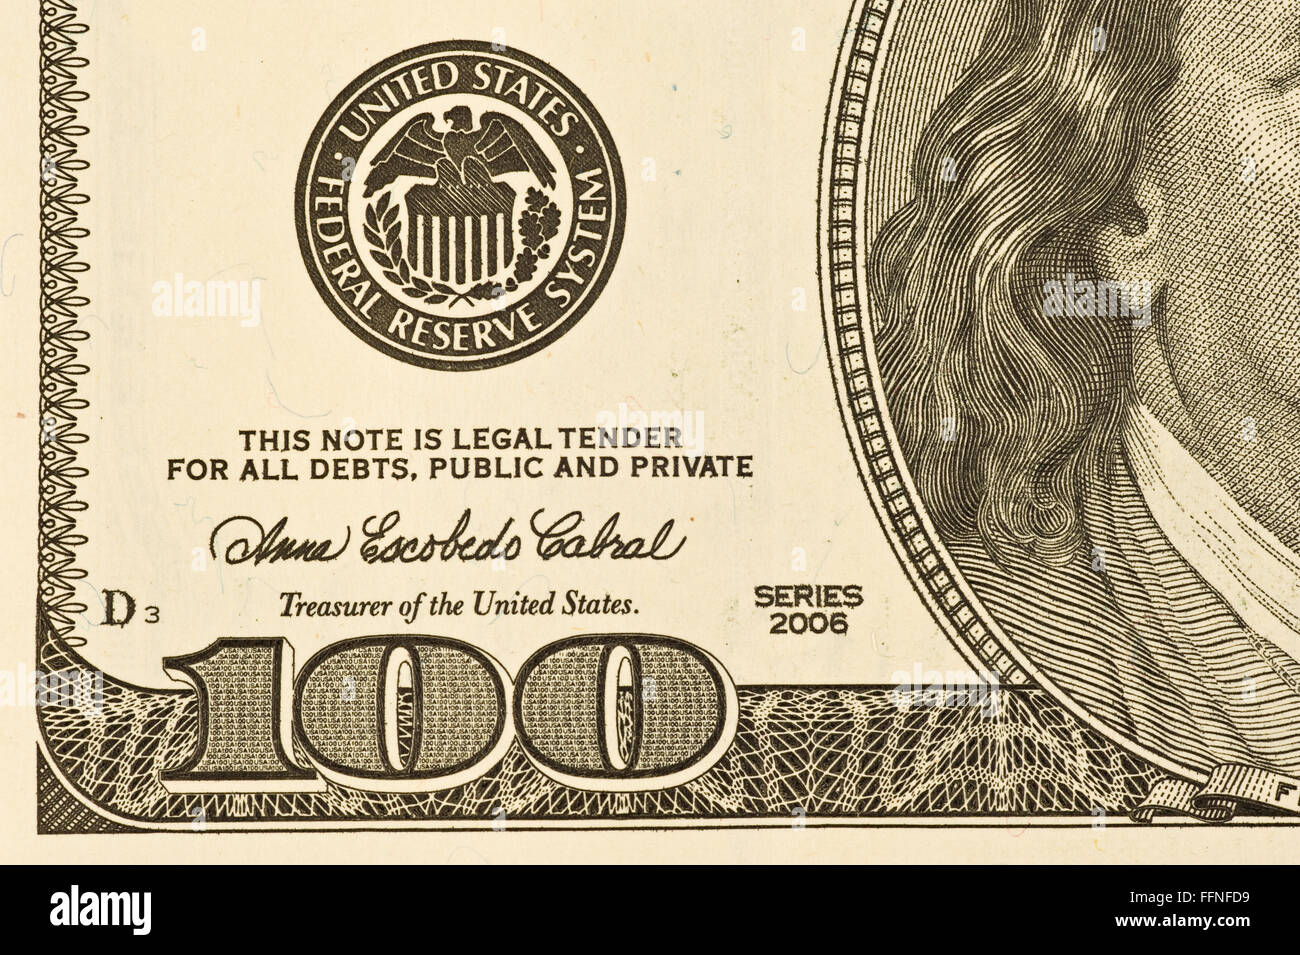 Hundred Dollar Bill Lower Left Corner - Stock Image